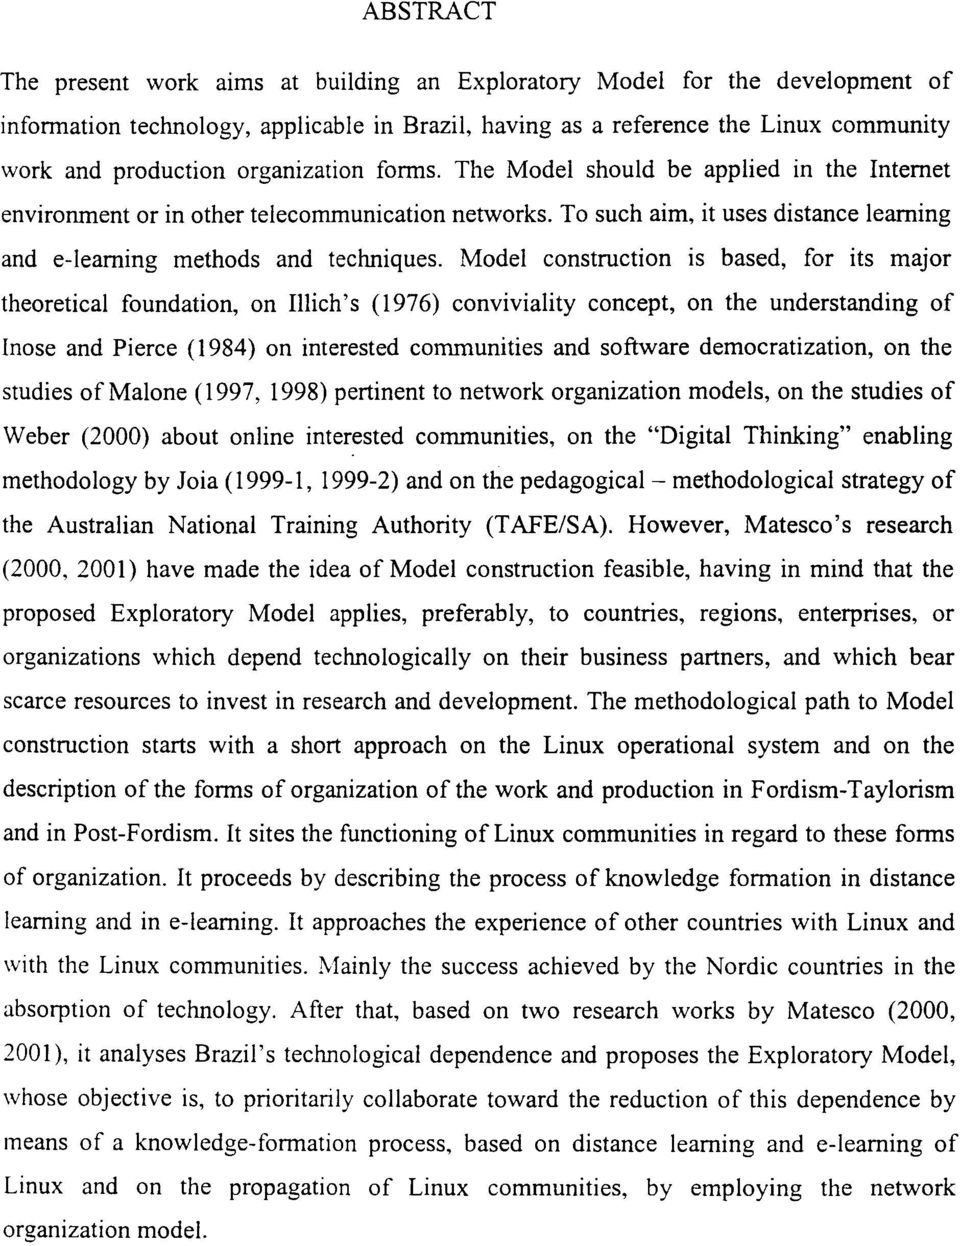 Model construction is based, for its major theoretical foundation, on Illich's (1976) conviviality concept, on the understanding of Inose and Pierce (1984) on interested communities and software